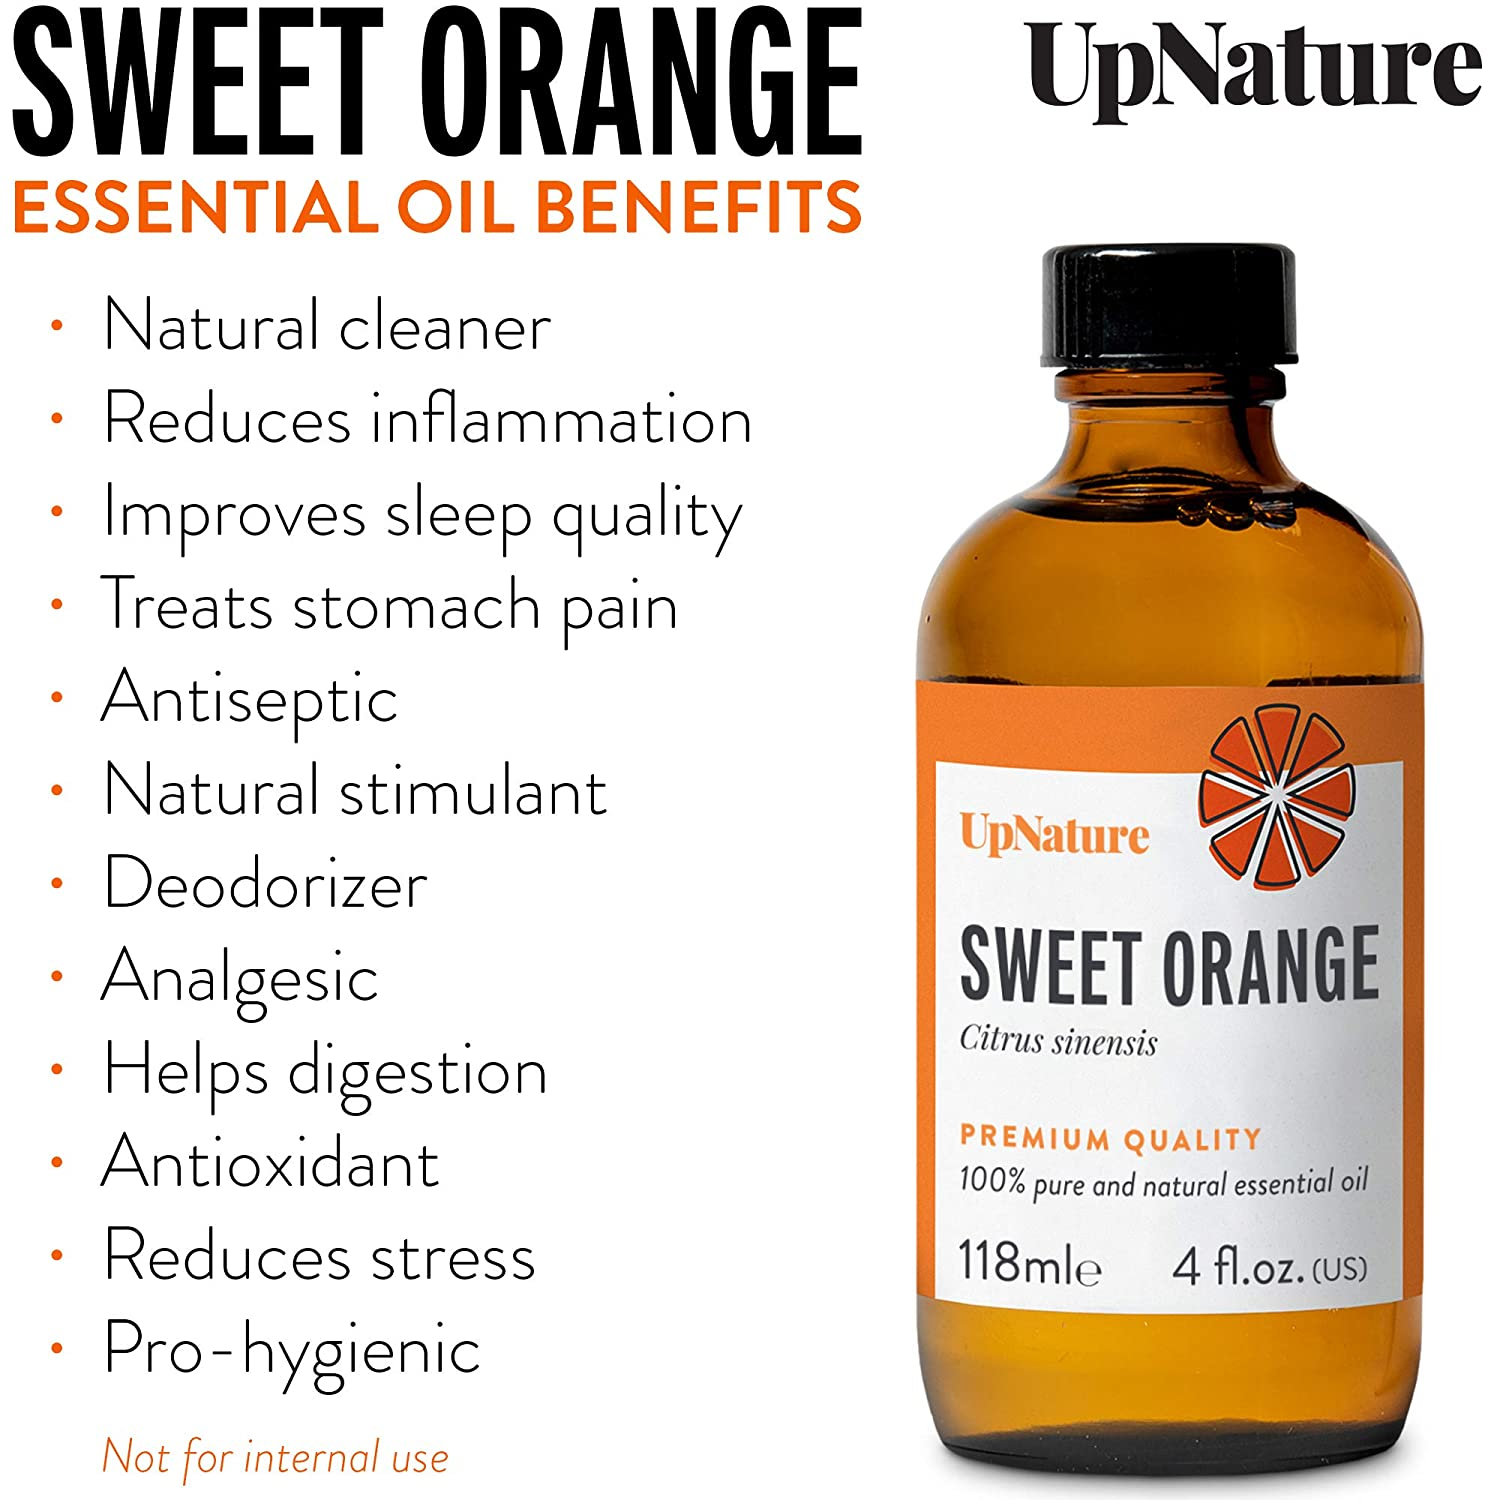 Orange Essential Oils 4 OZ - Pure Sweet Orange Oil, Therapeutic Grade, Undiluted, Non-GMO - Sweet Orange Oil for Skin, Mood Boosting and Calming